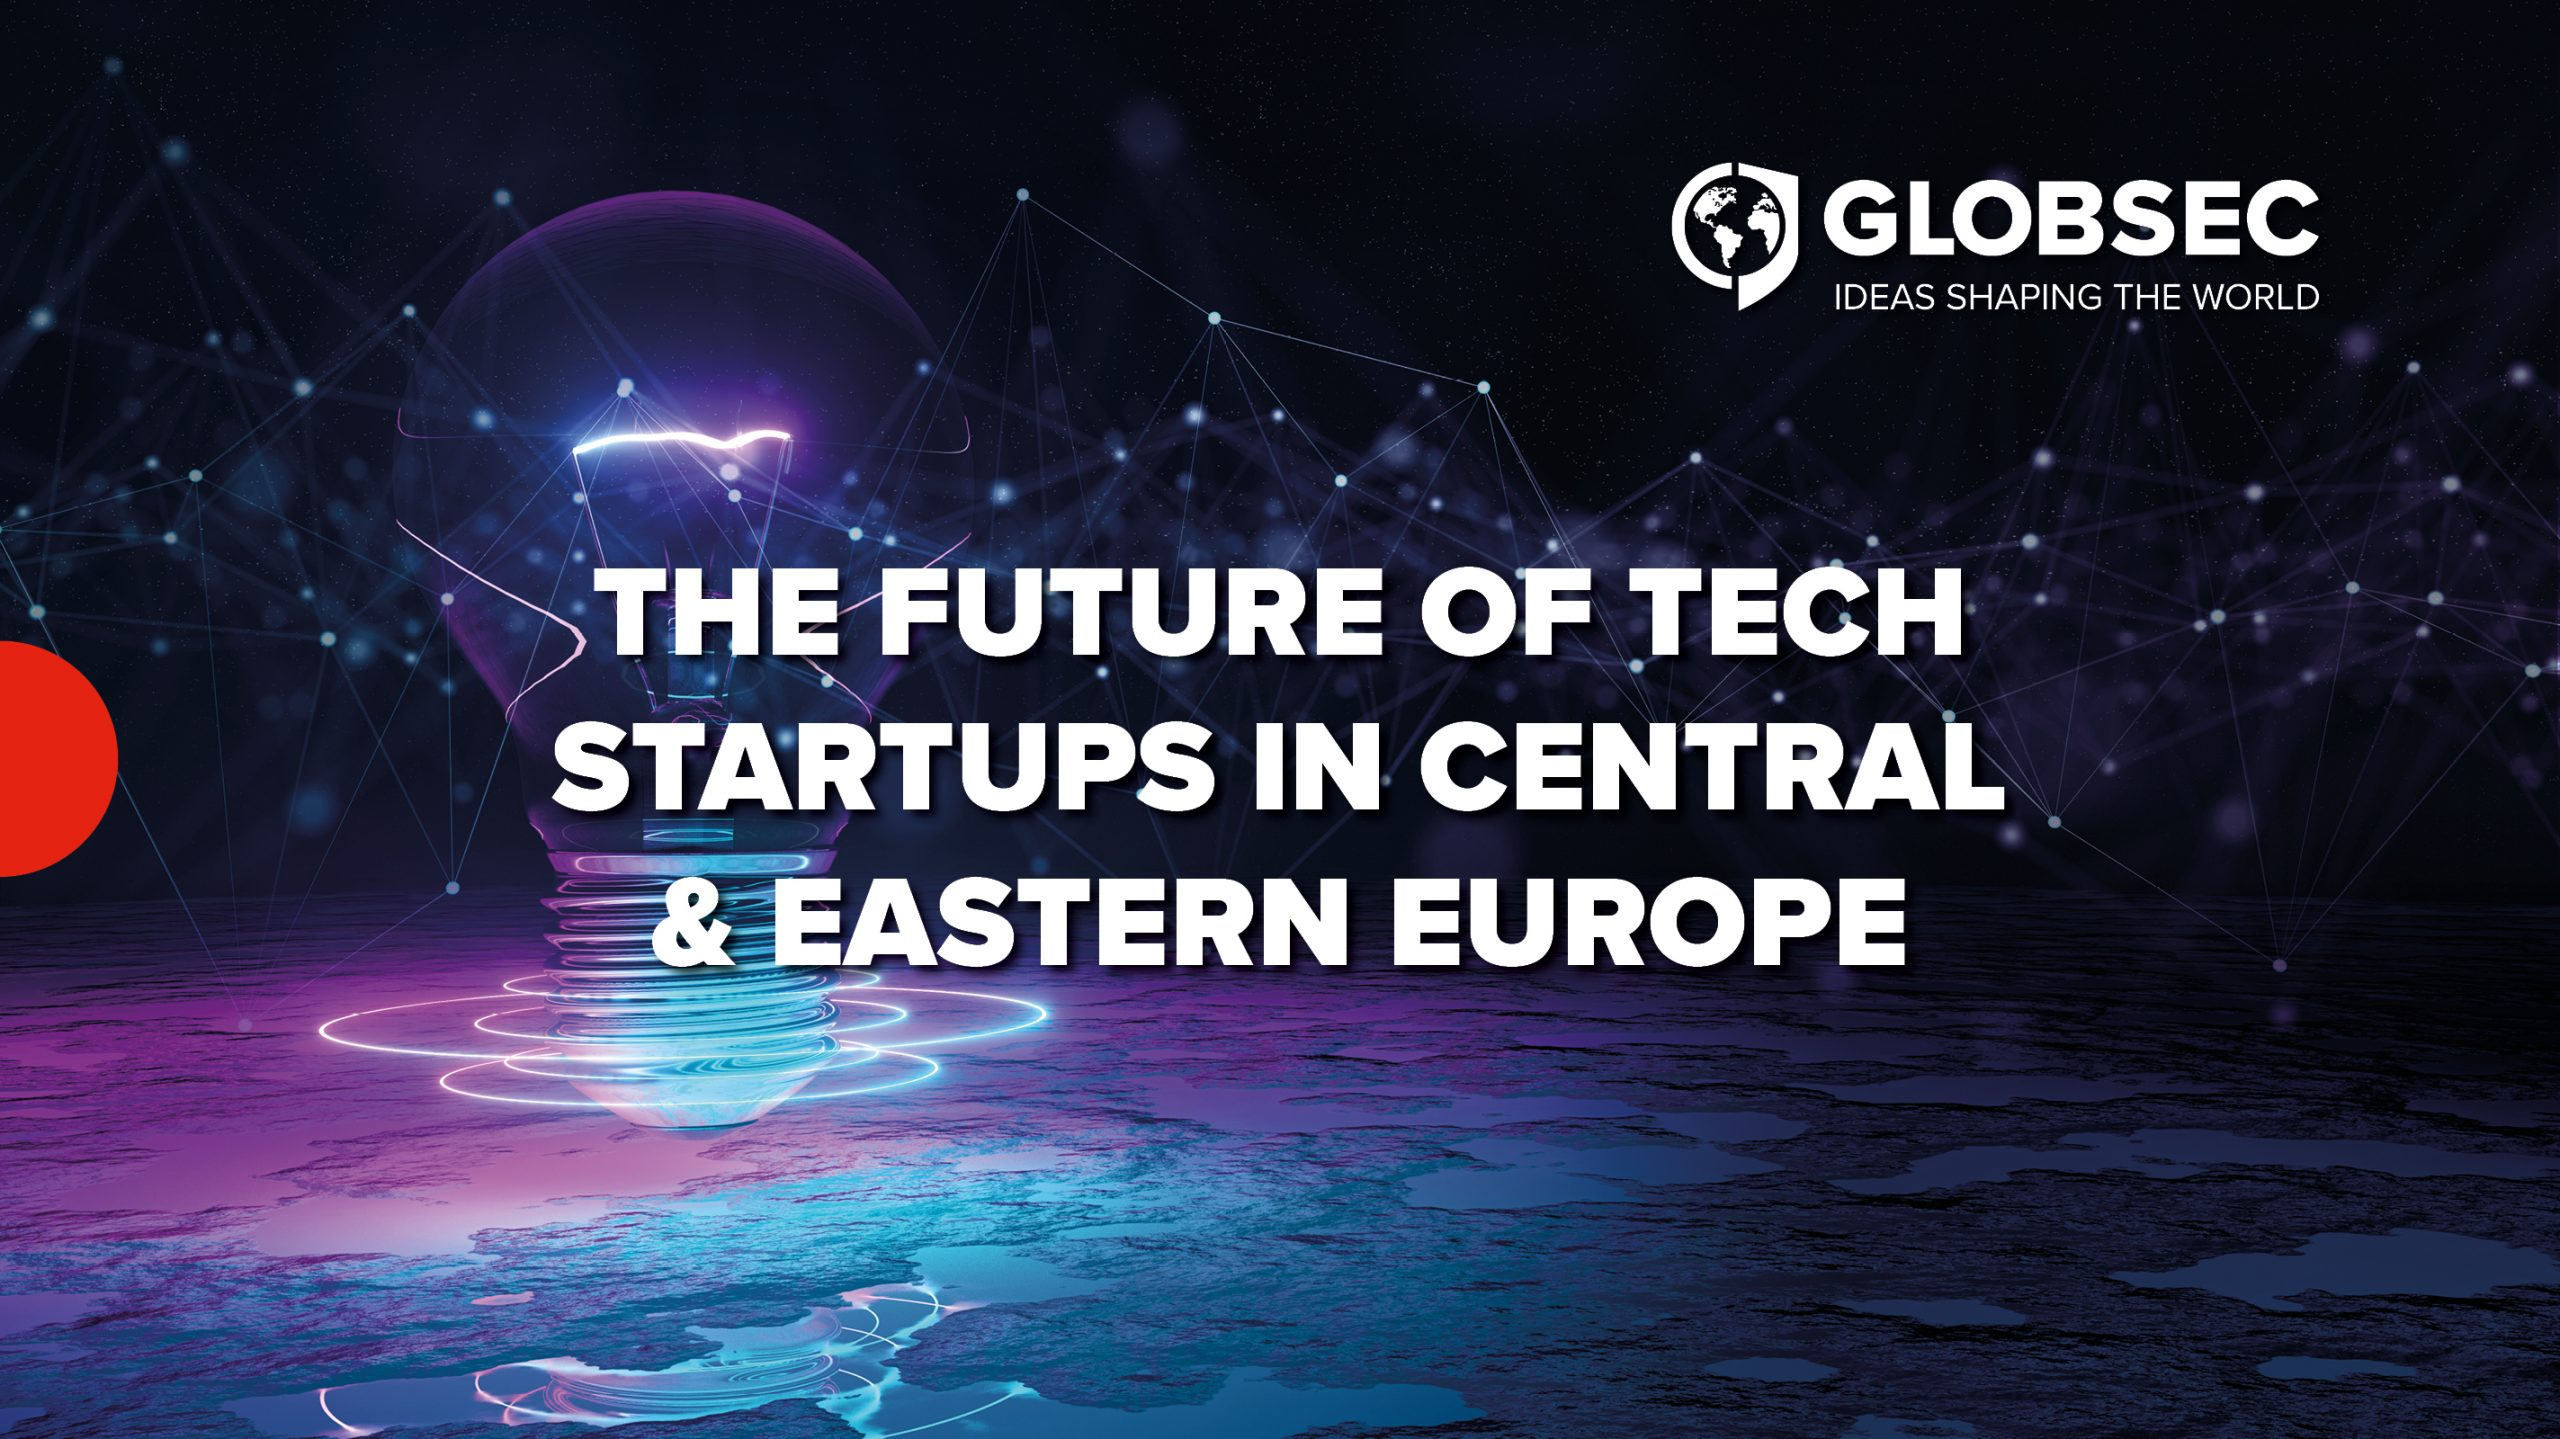 The Future of Tech Startups in Central & Eastern Europe